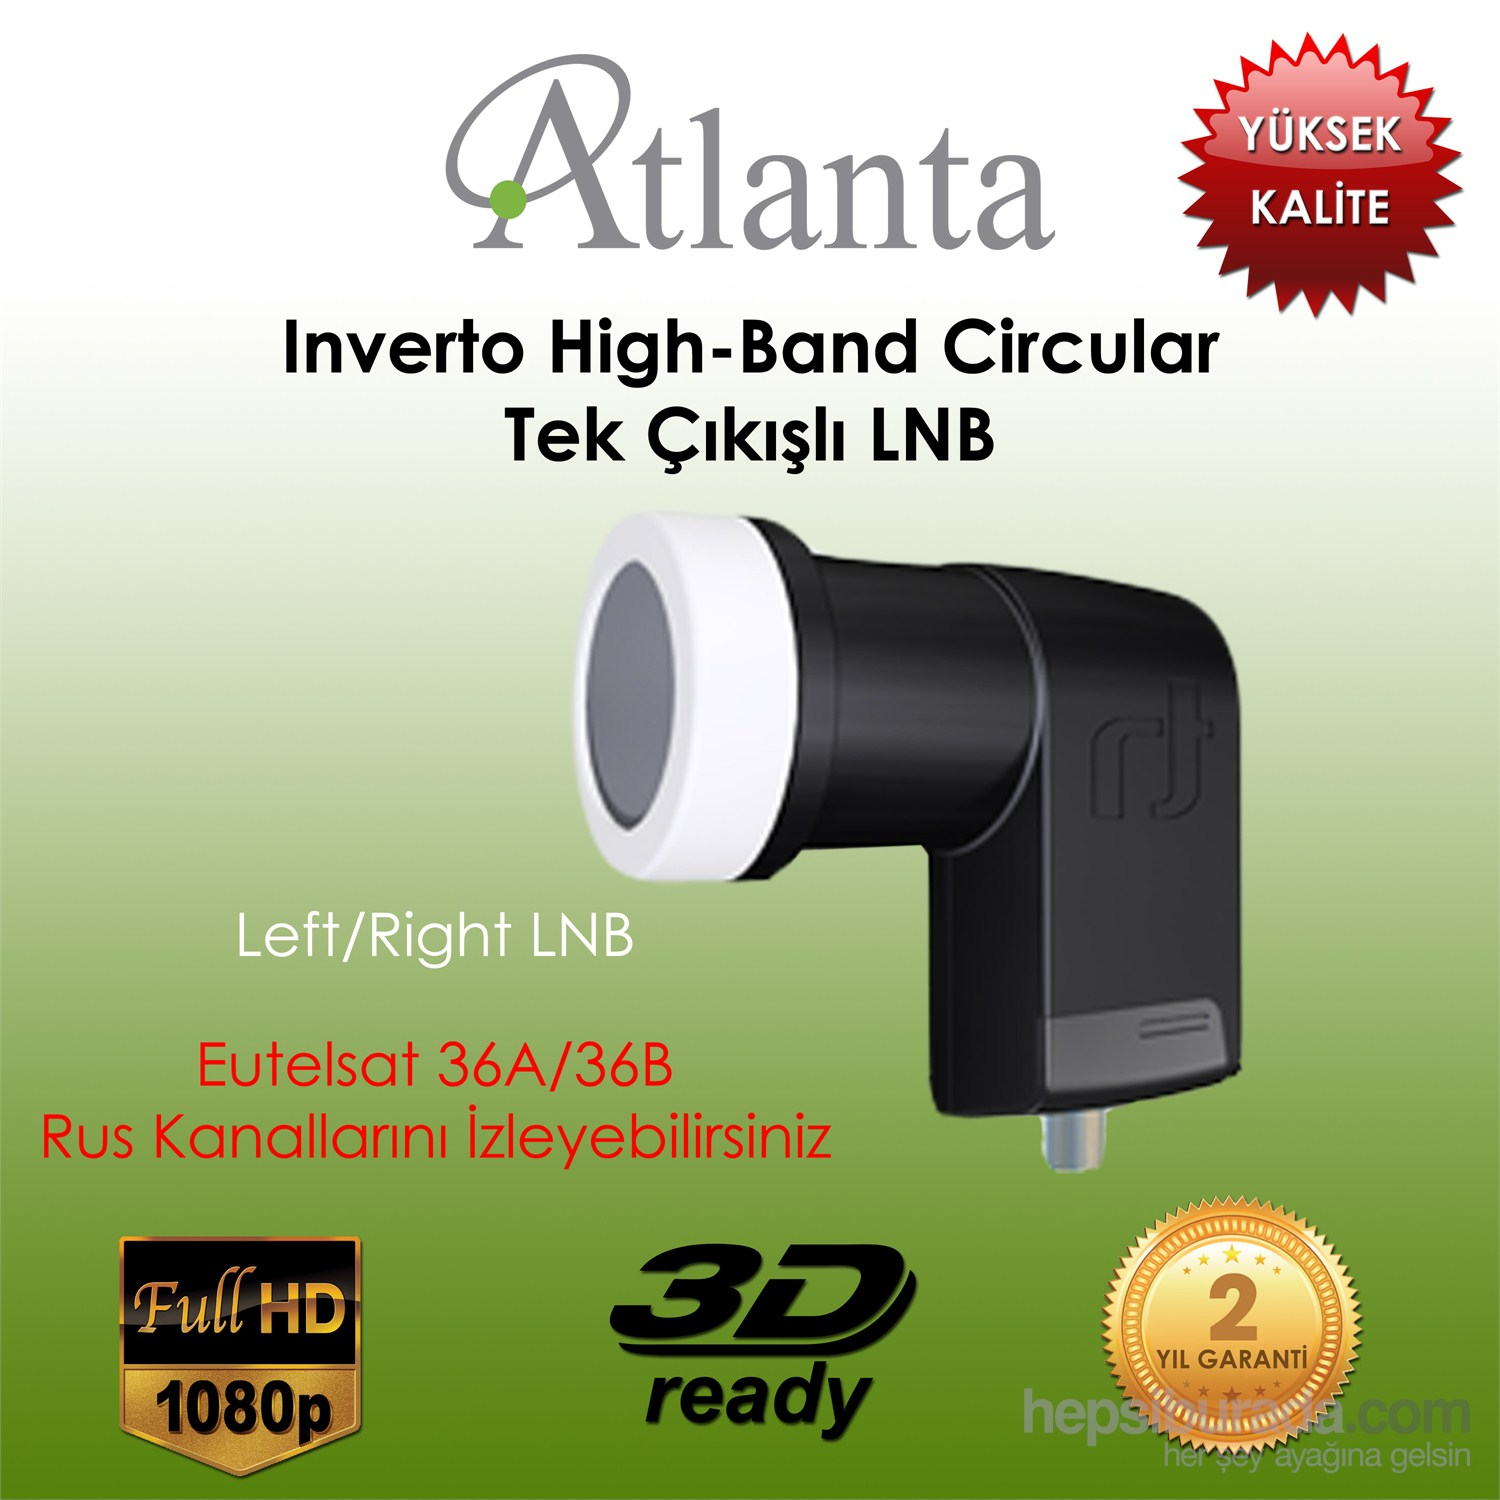 Atlanta Inverto High-Band Circular Single Lnb (Tek çıkışlı)